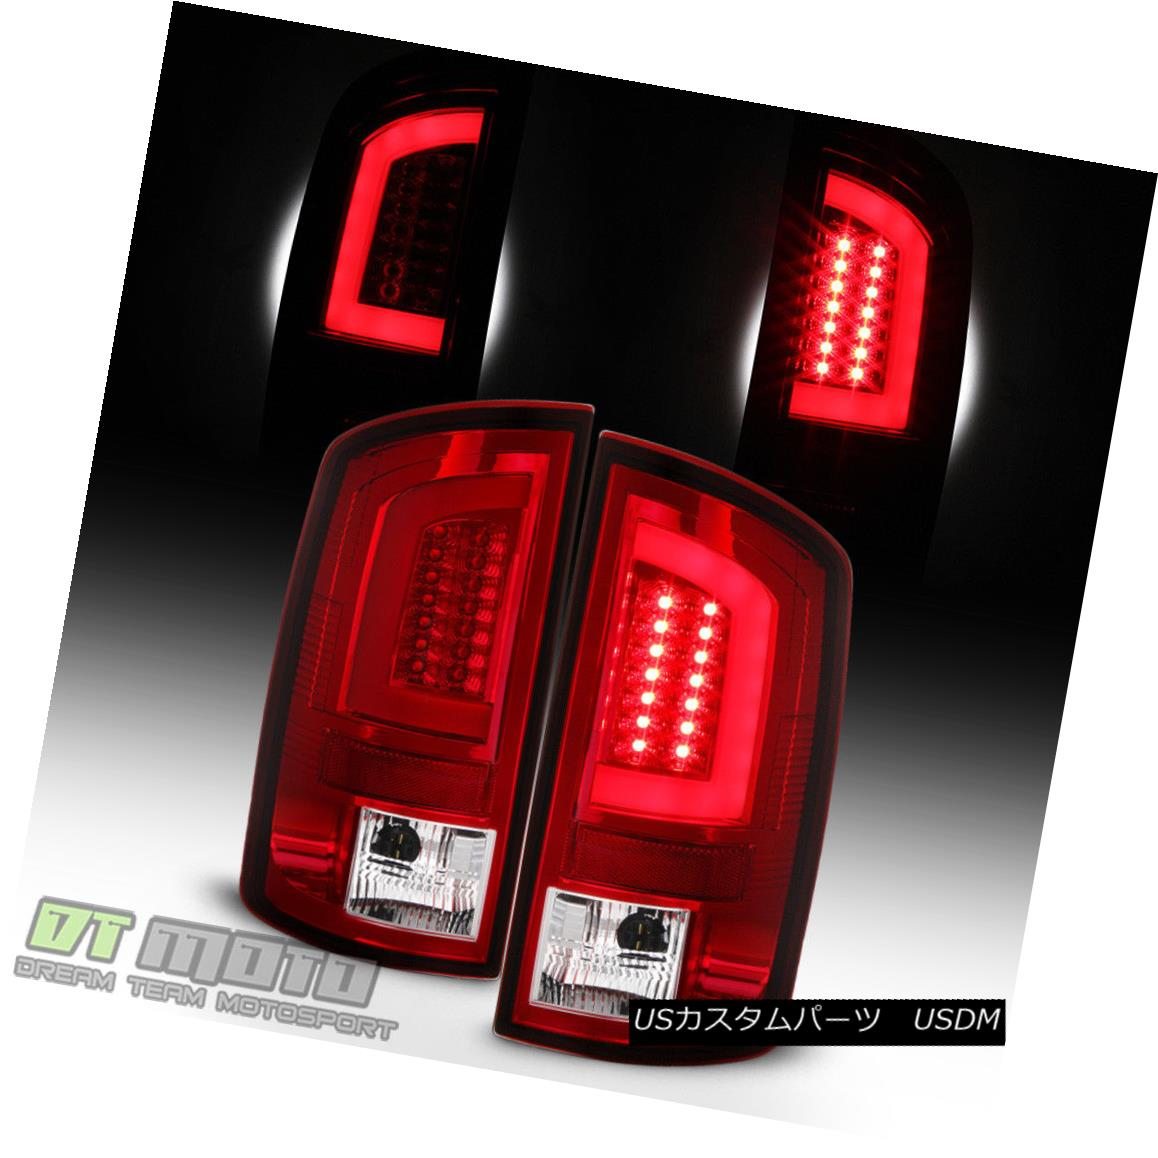 テールライト [LED Tube Design] Red 2007-2008 Dodge Ram 1500 2500 3500 Tail Lights Brake Lamps [LEDチューブ設計] Red 2007-2008 Dodge Ram 1500 2500 3500テールライトブレーキランプ